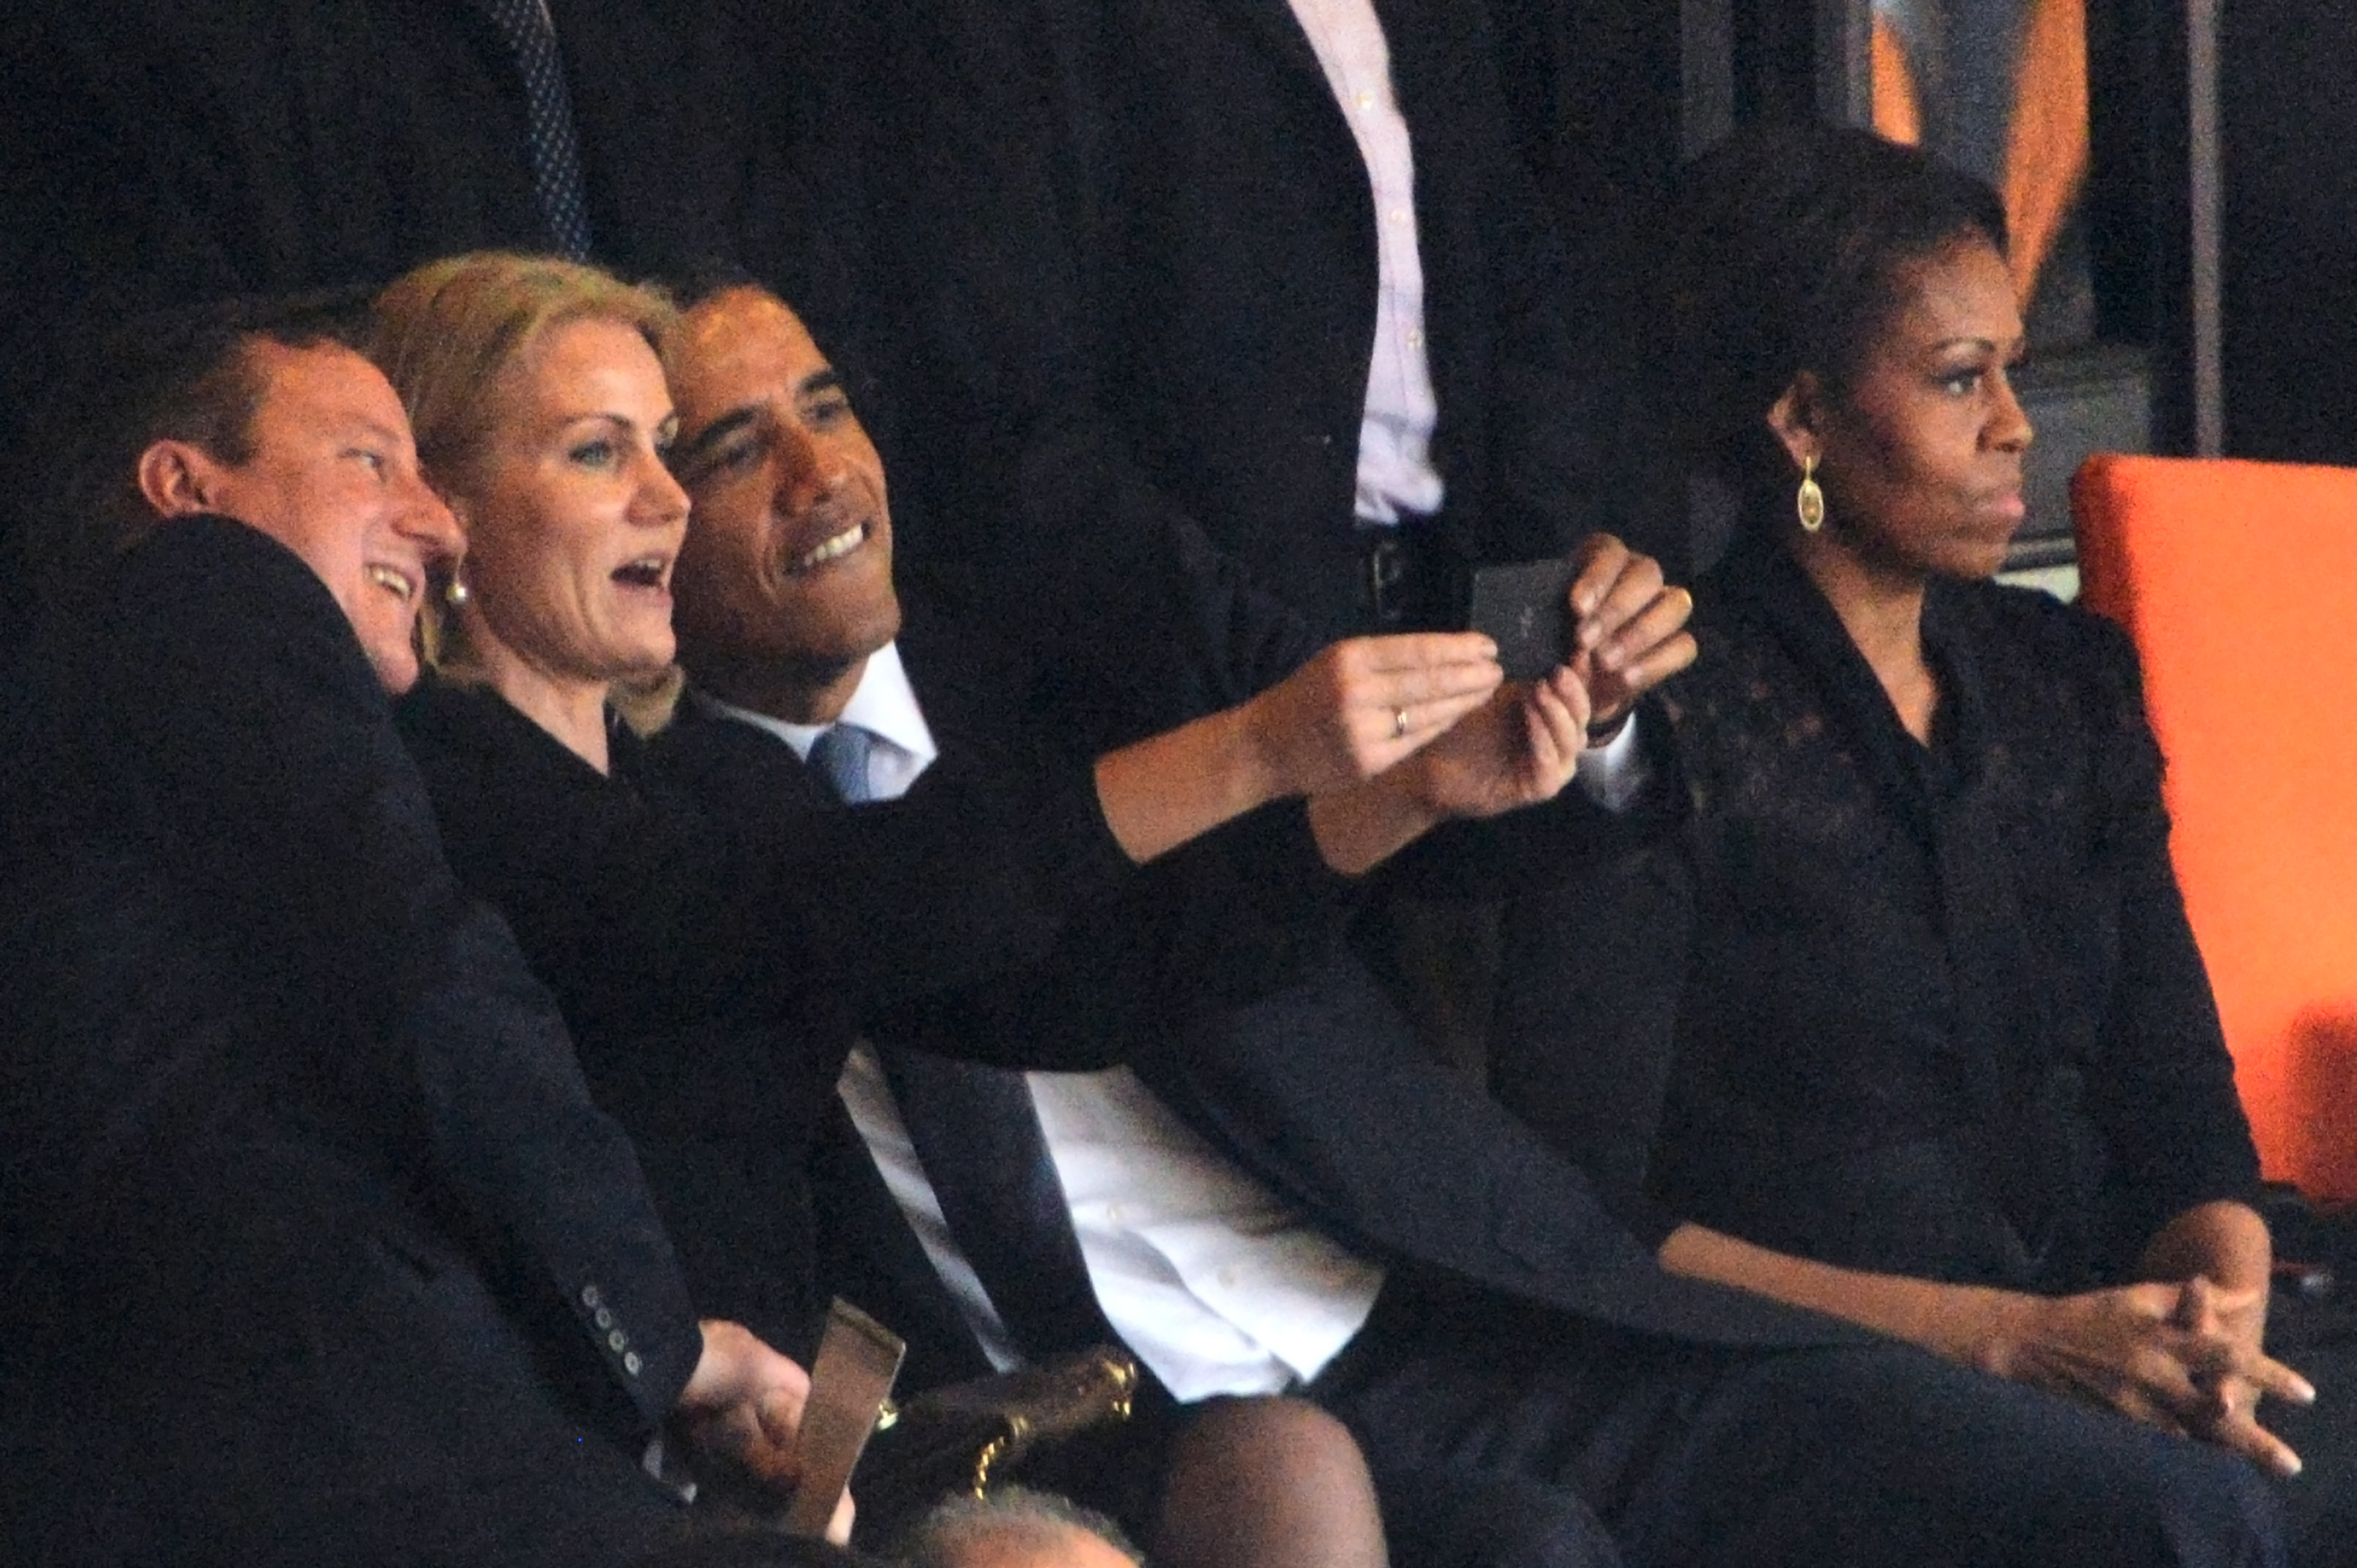 U.S. President  Barack Obama and British Prime Minister David Cameron pose for a selfie with Denmark's Prime Minister Helle Thorning Schmidt during the memorial service of former South African president Nelson Mandela in Johannesburg, Dec. 10, 2013.